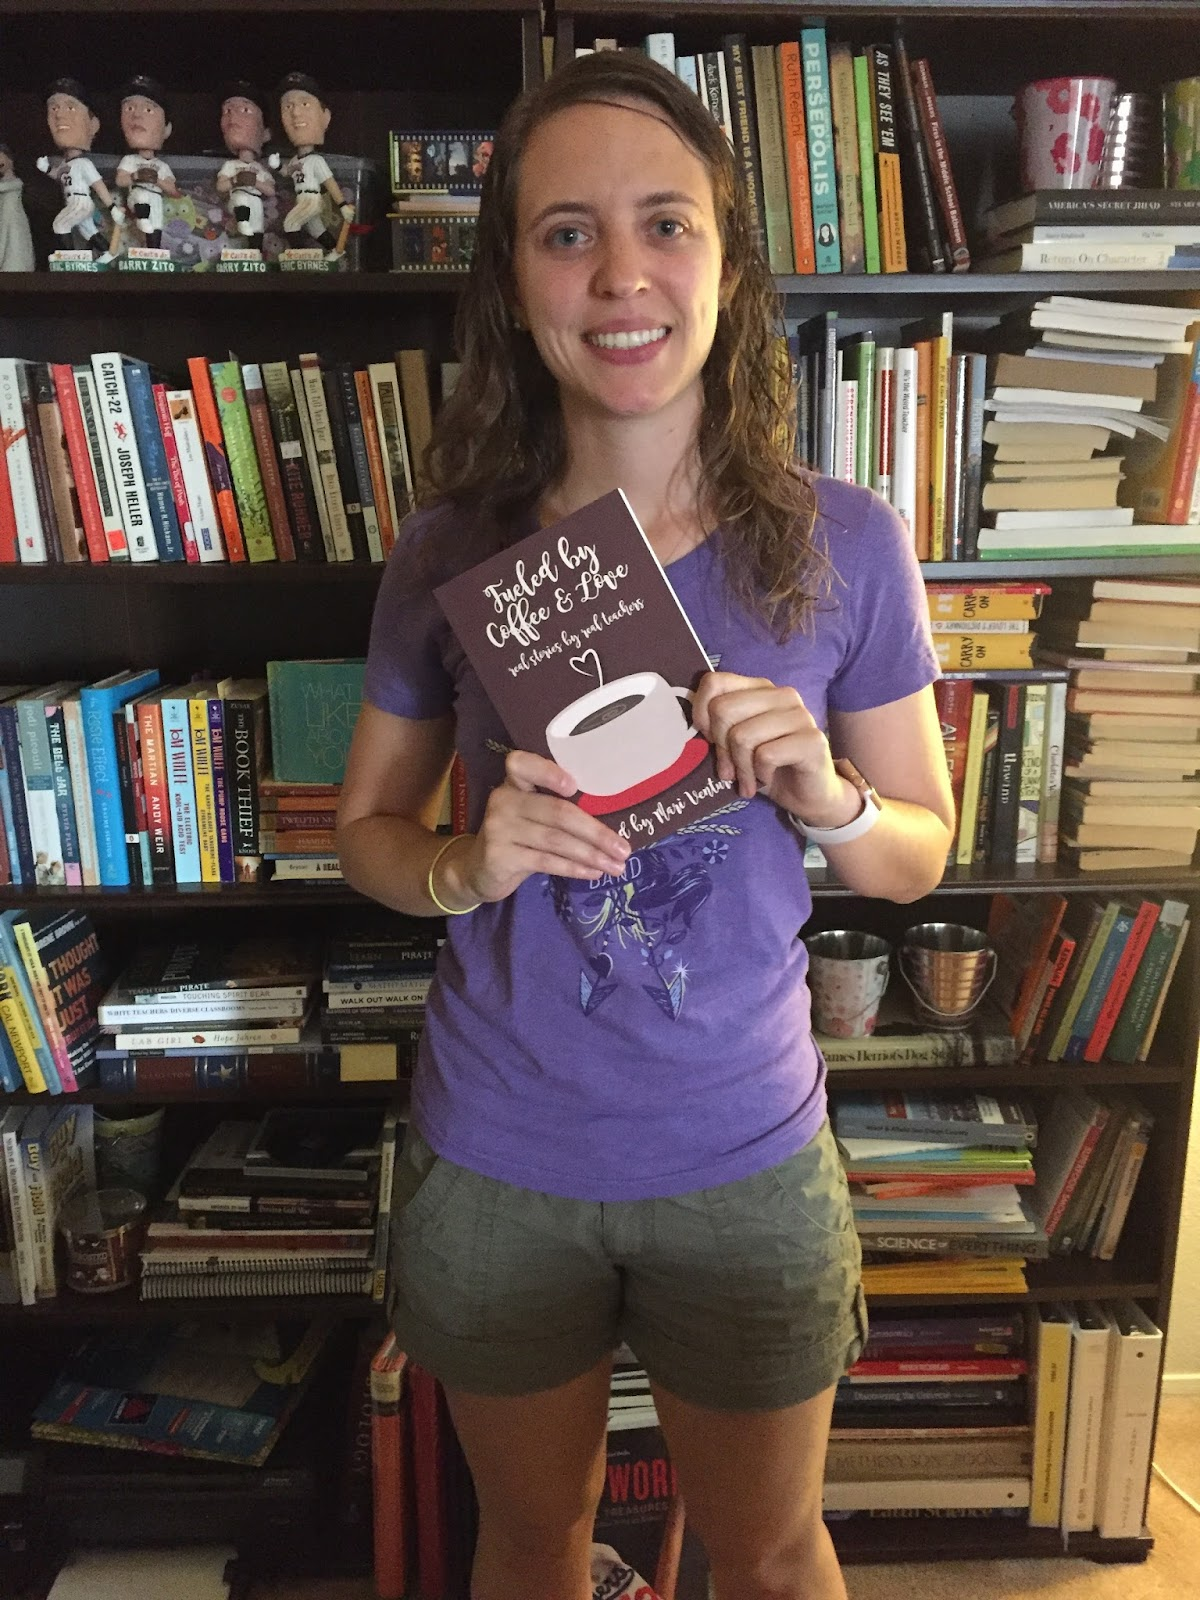 I'm holding my copy of the Fueled by Coffee and Love proof!